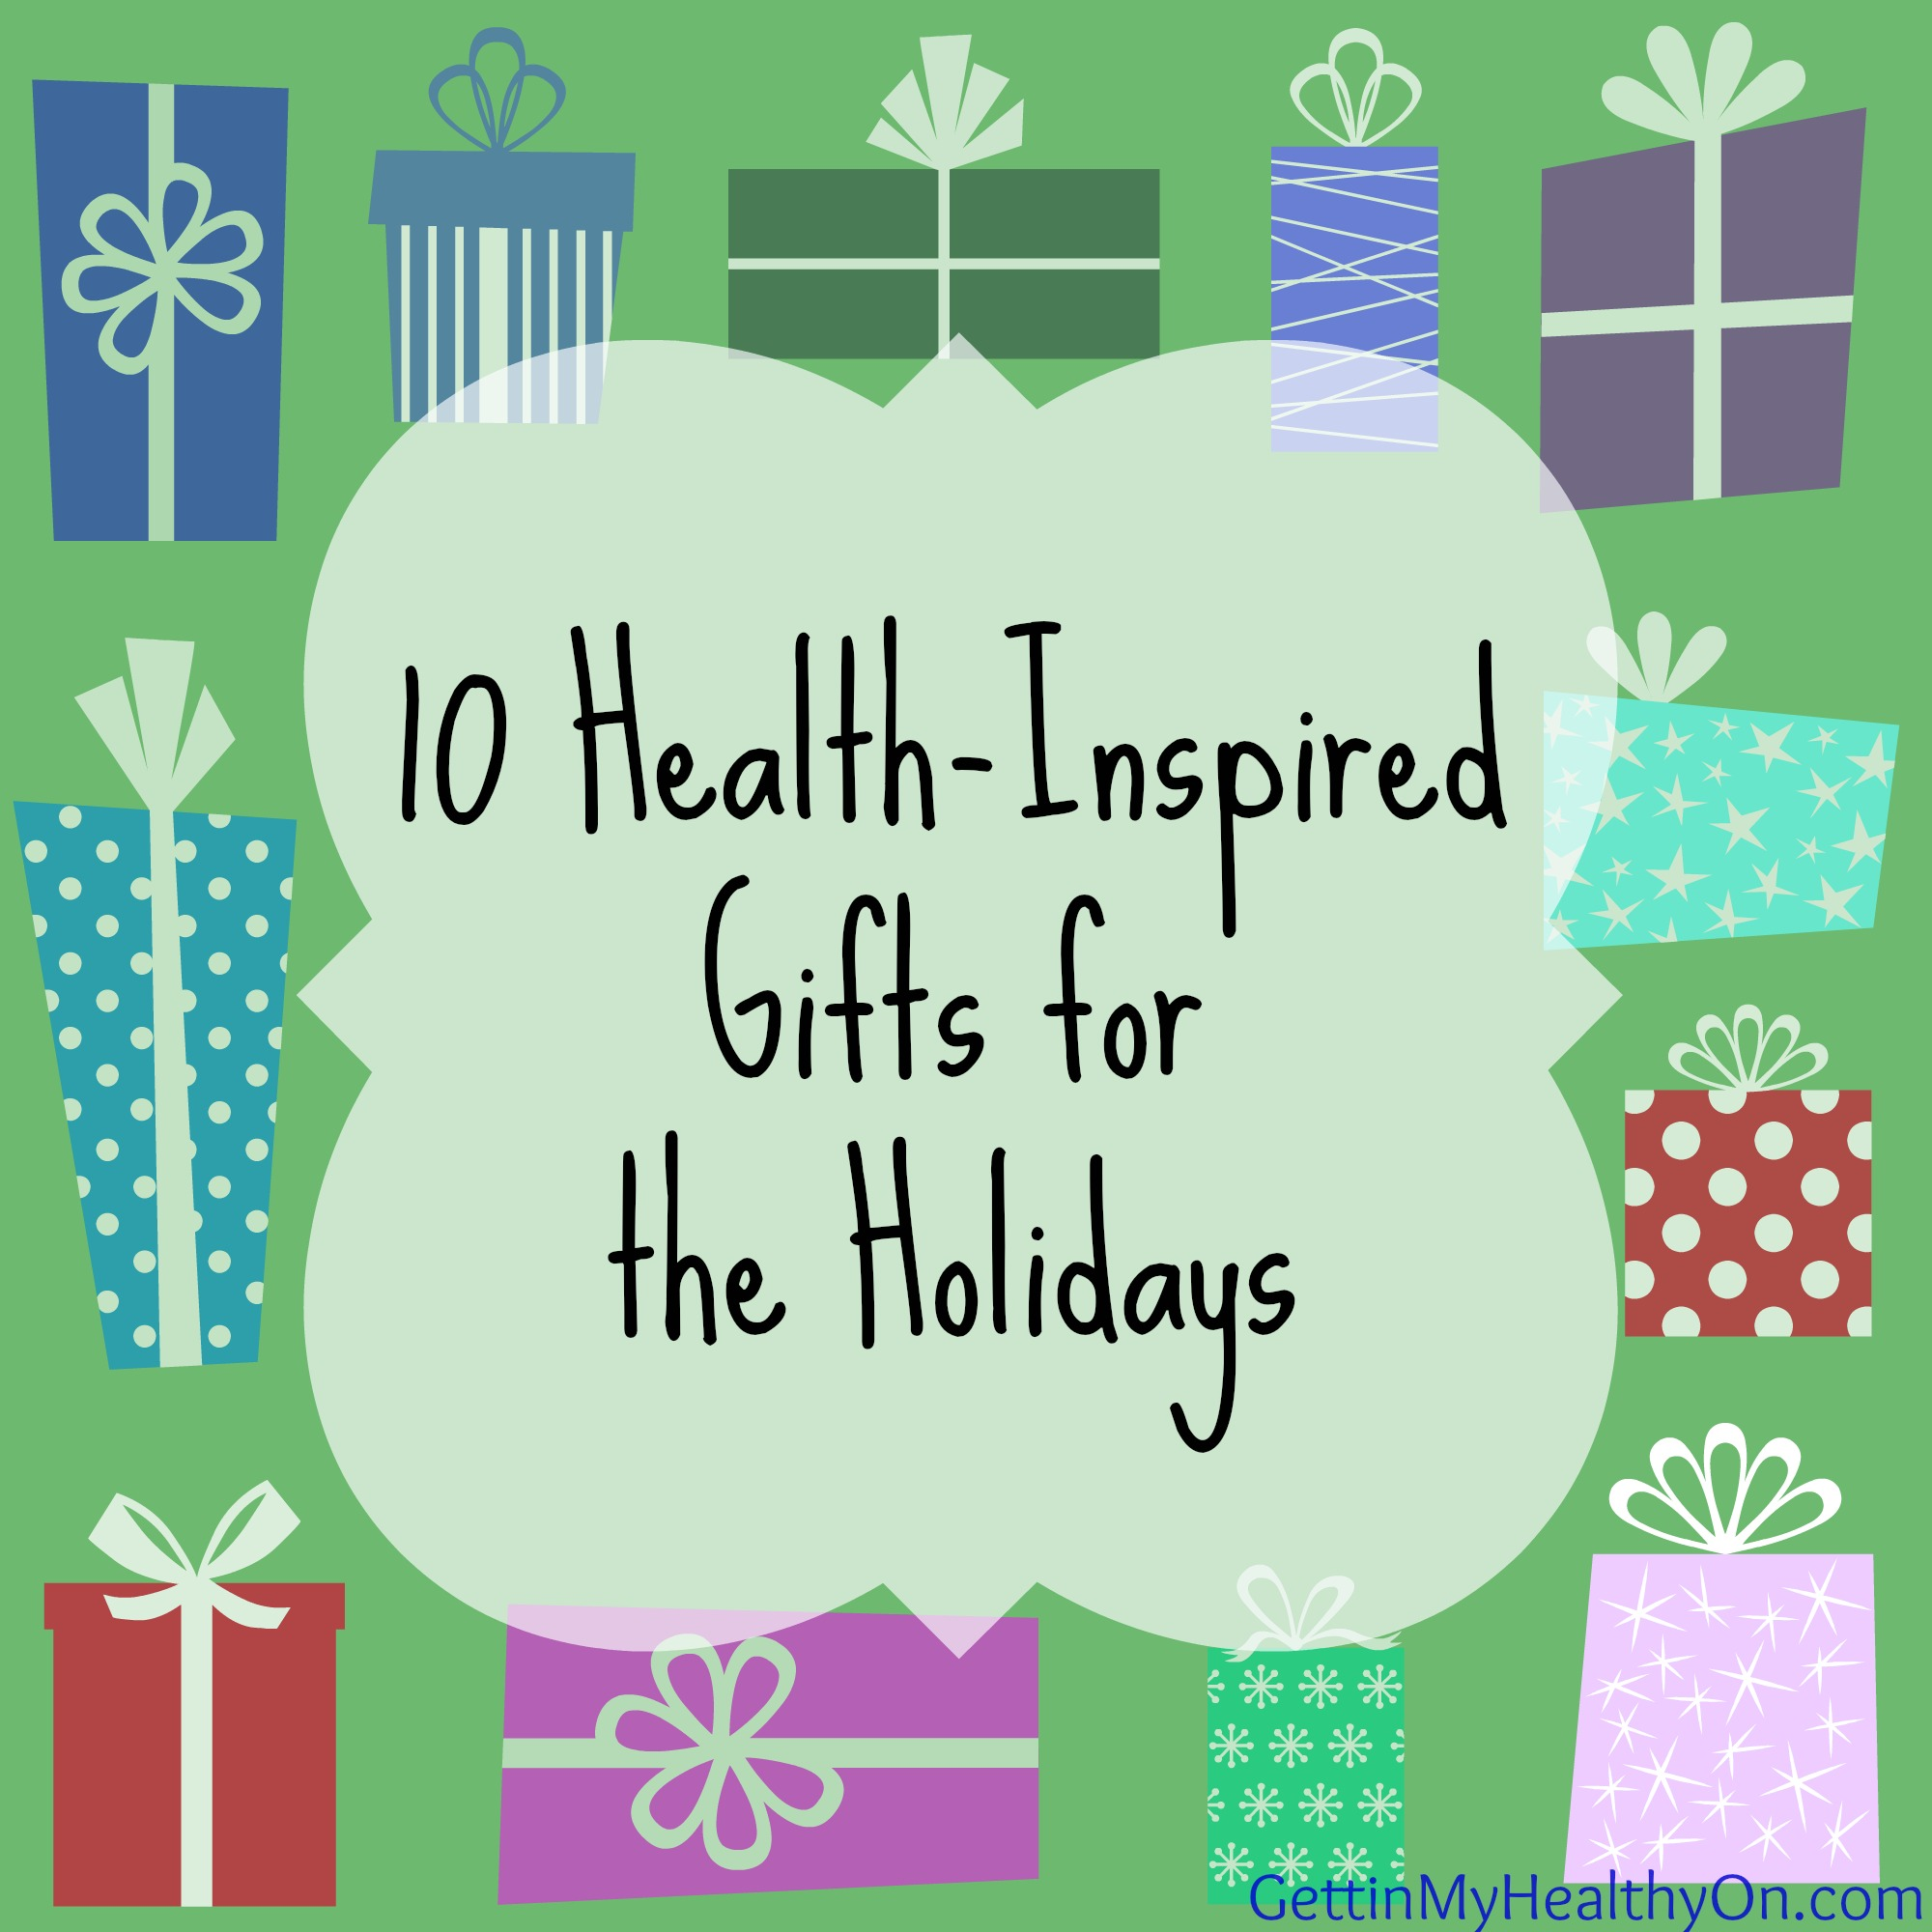 10 Health Inspired Gifts for the Holidays.jpg